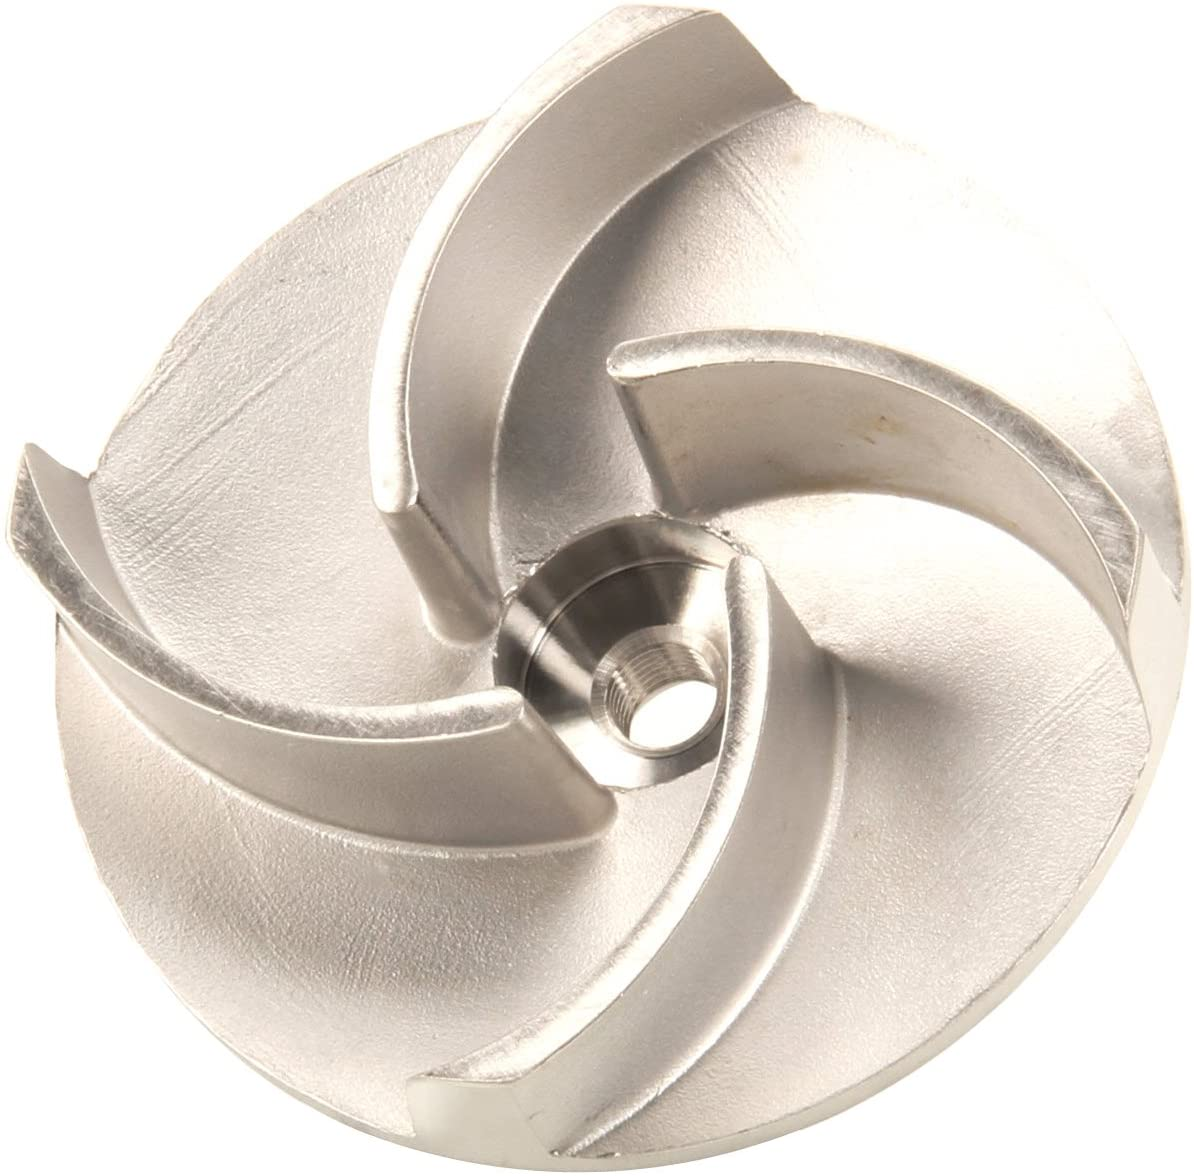 CMA Dish Machines 03222.10 Open Impeller, Stainless Steel Finish